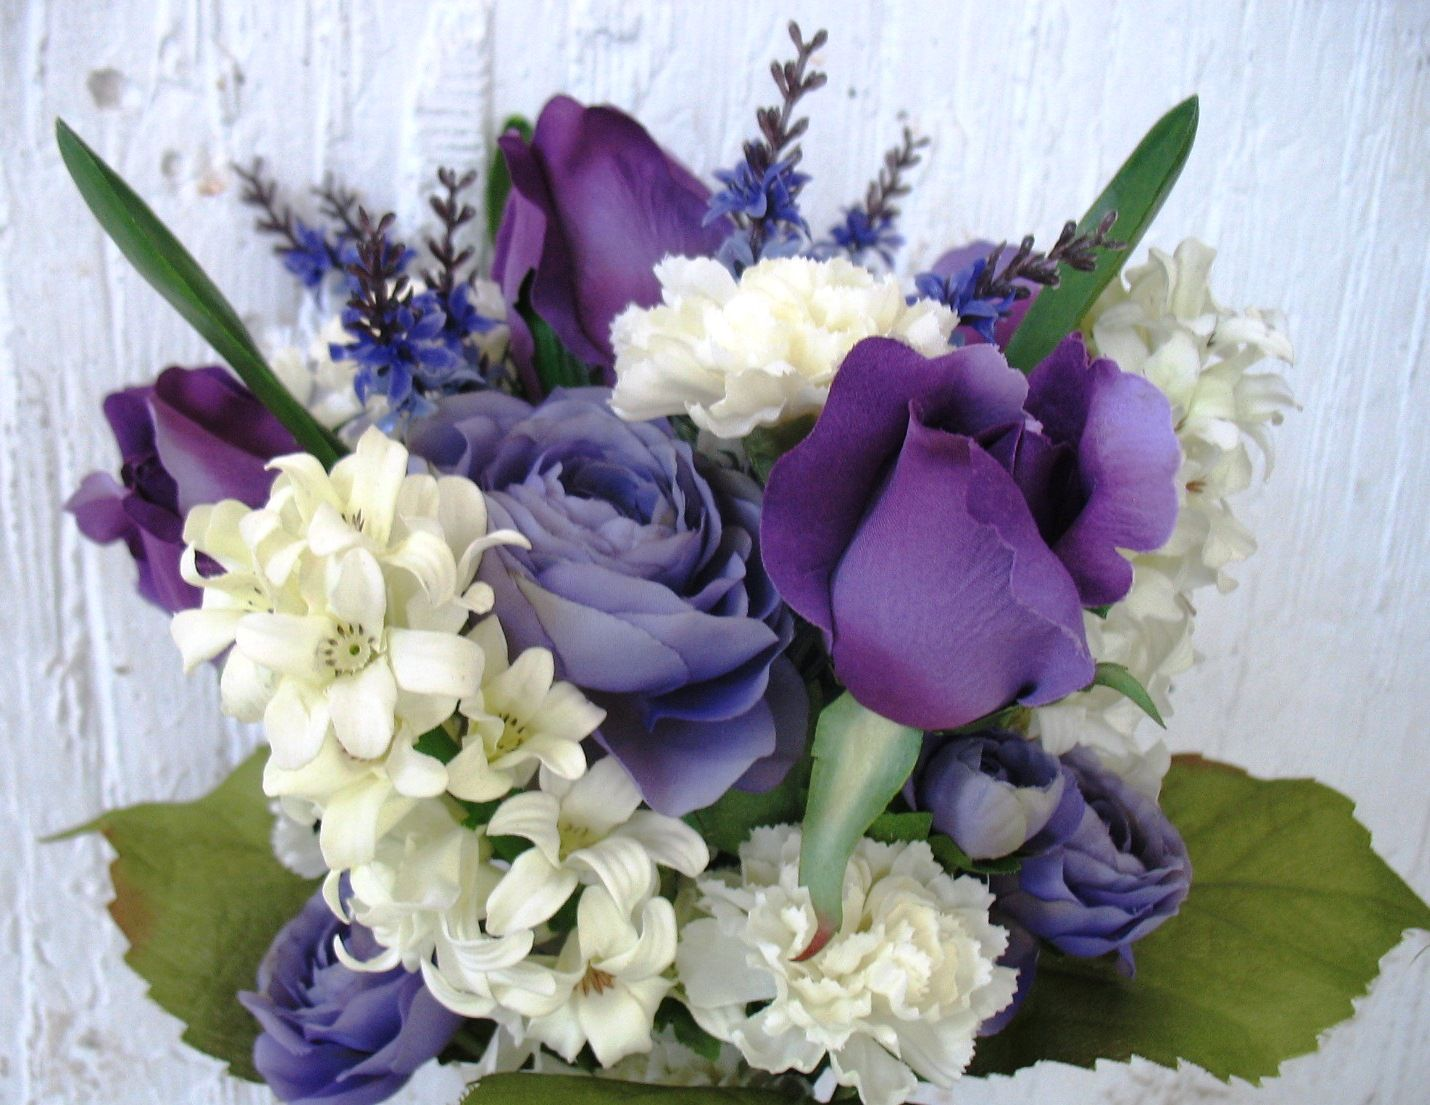 Purple roses and ranunculus with white hyacinths